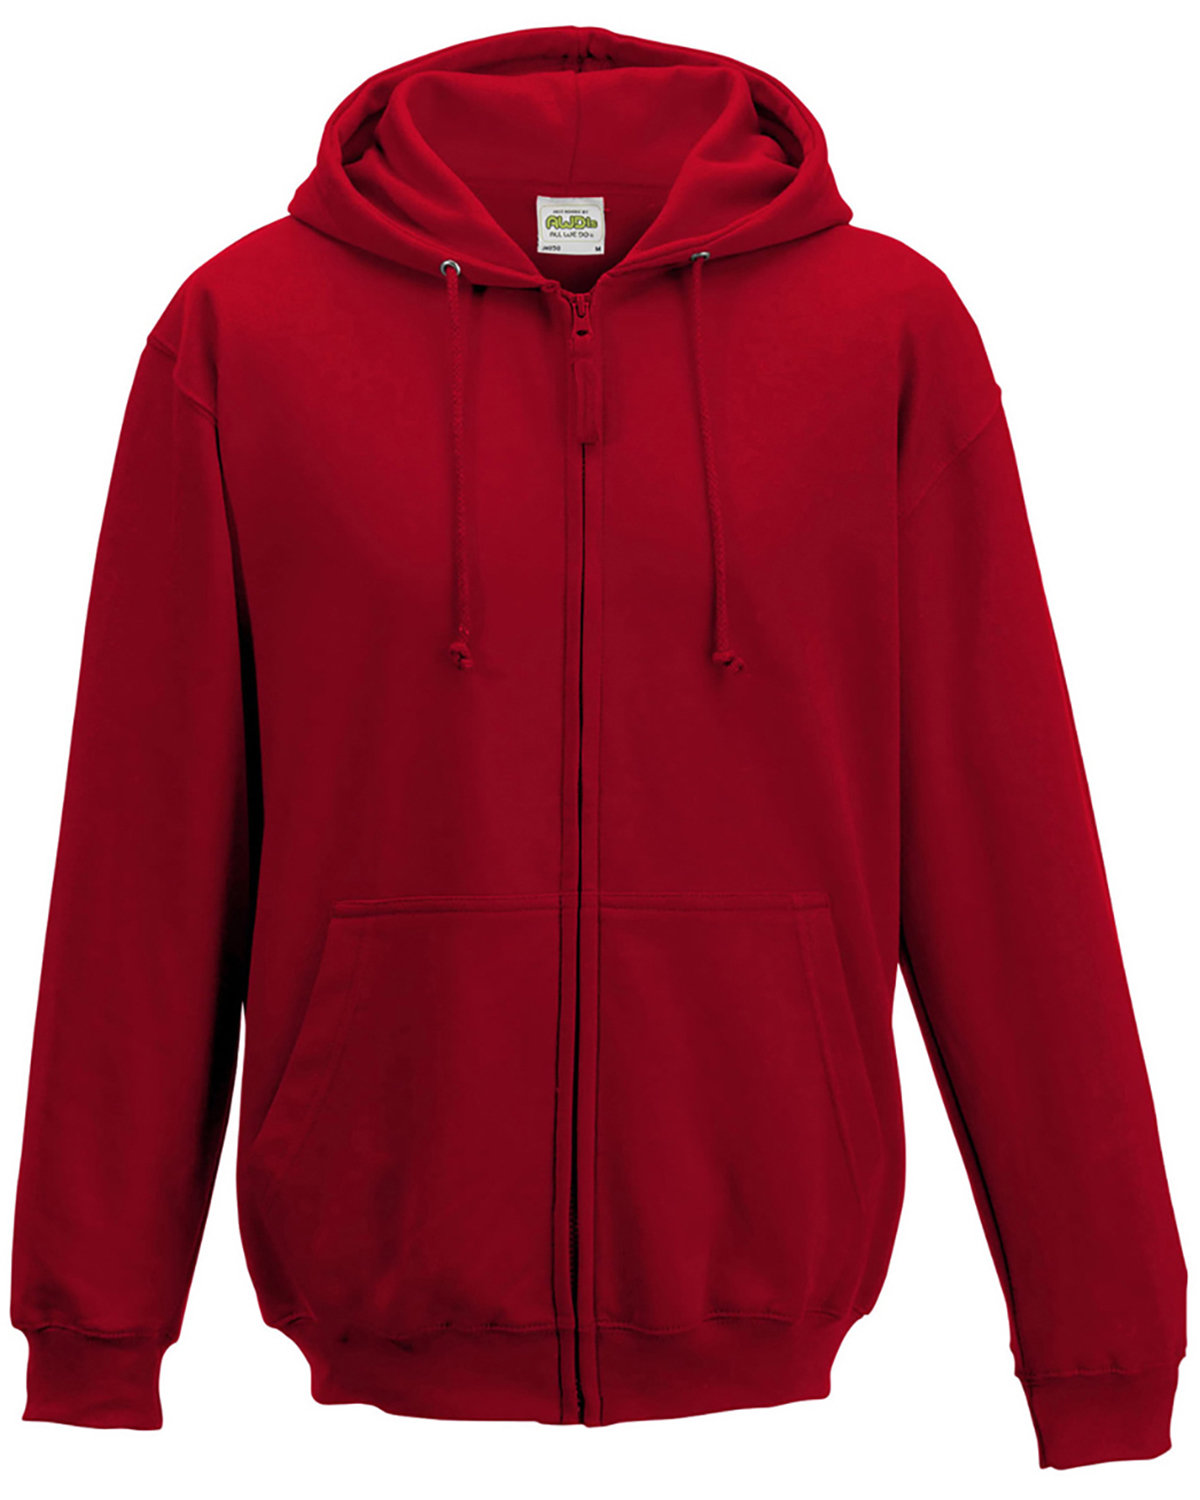 Just Hoods By AWDis Men's 80/20 Midweight College Full-Zip Hooded Sweatshirt FIRE RED